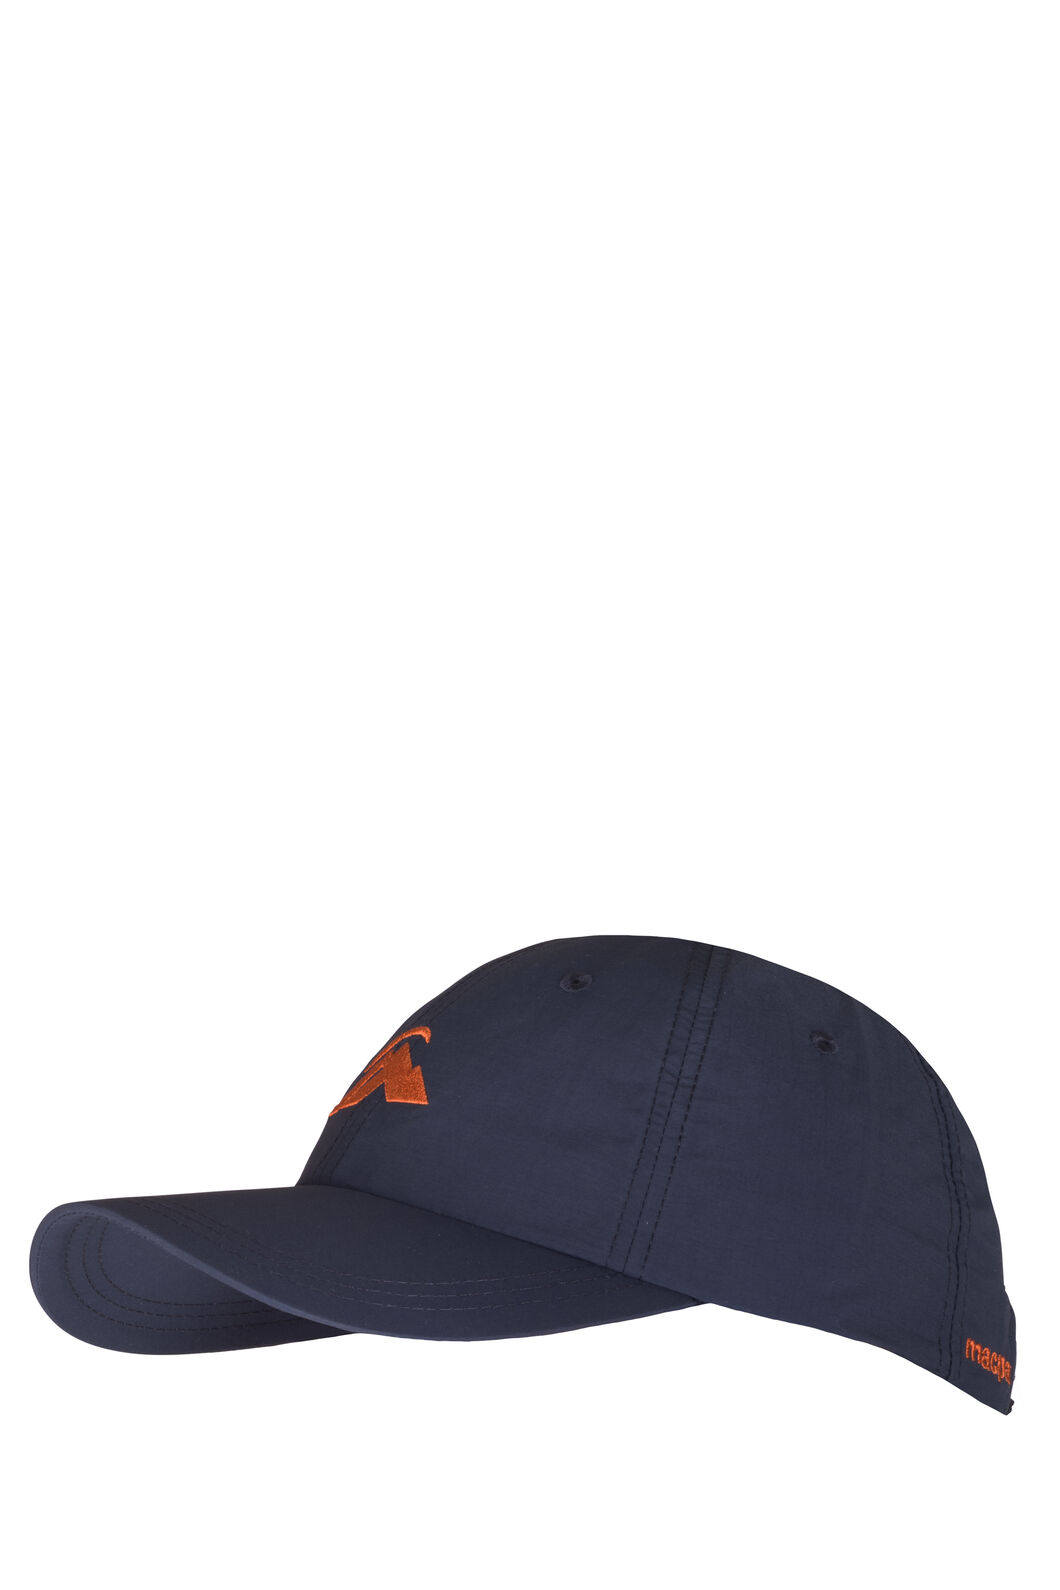 Macpac Mini Hiker Cap, Orange/Navy, hi-res